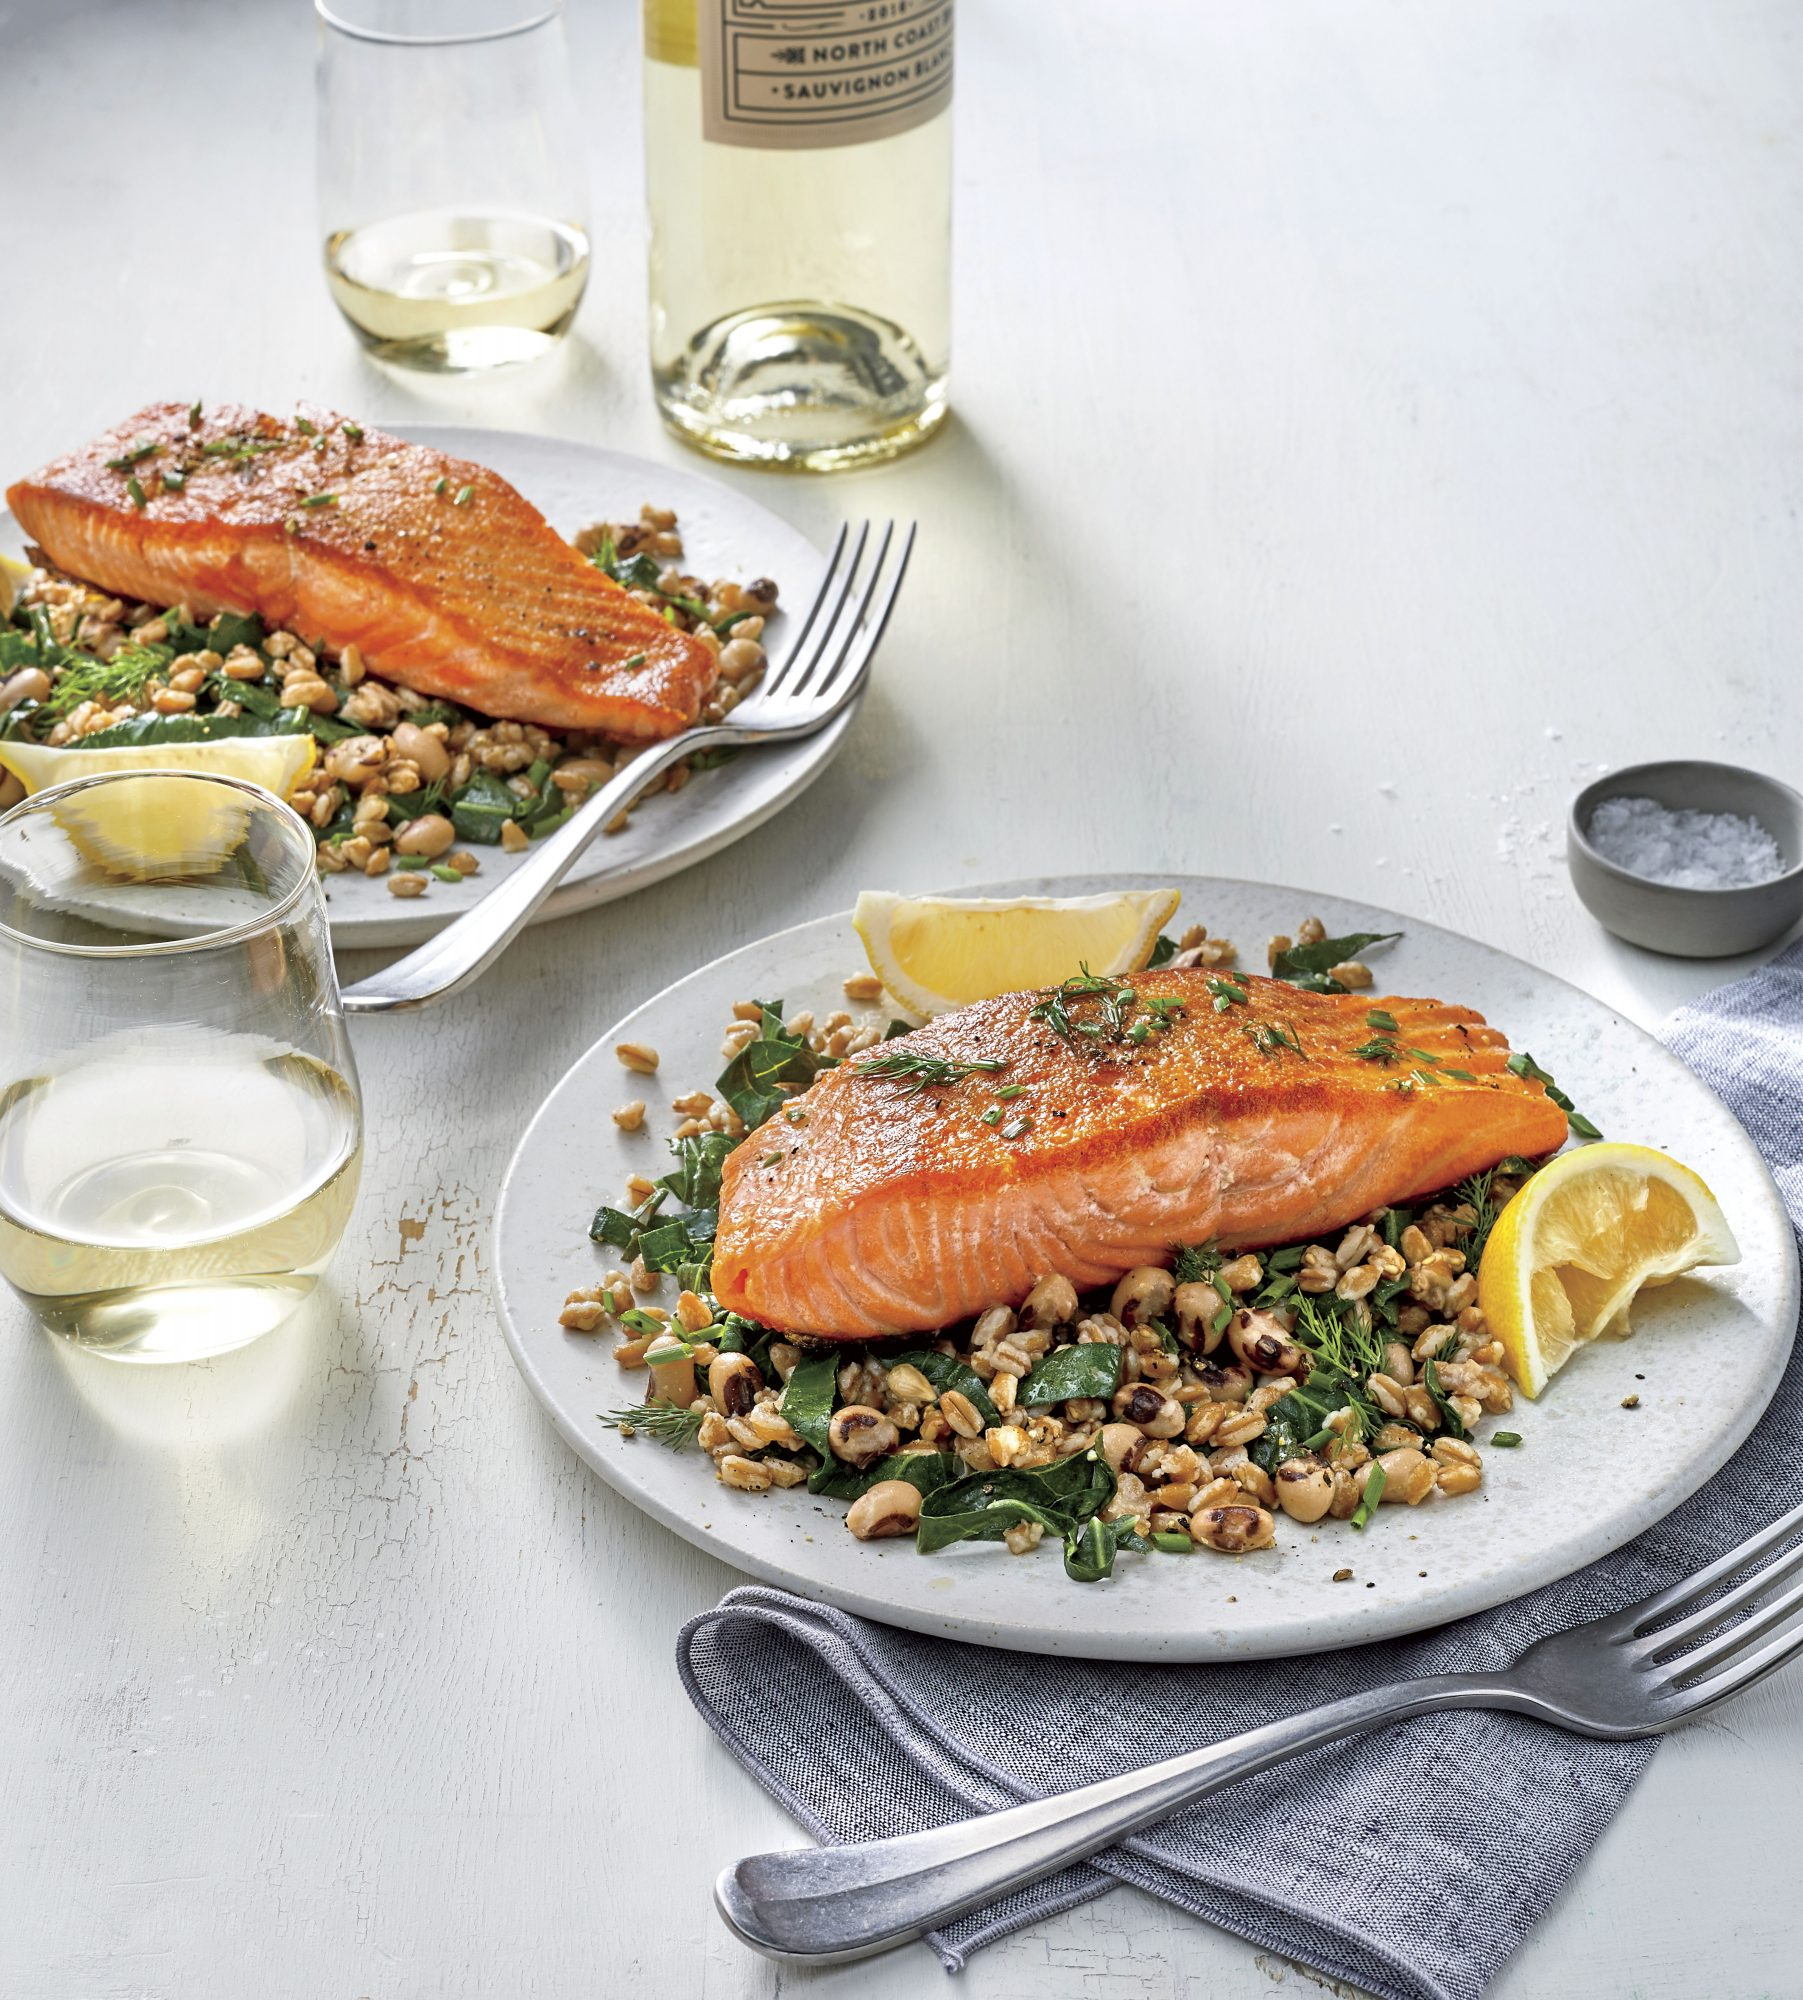 Salmon with Lemony Greens and Grains